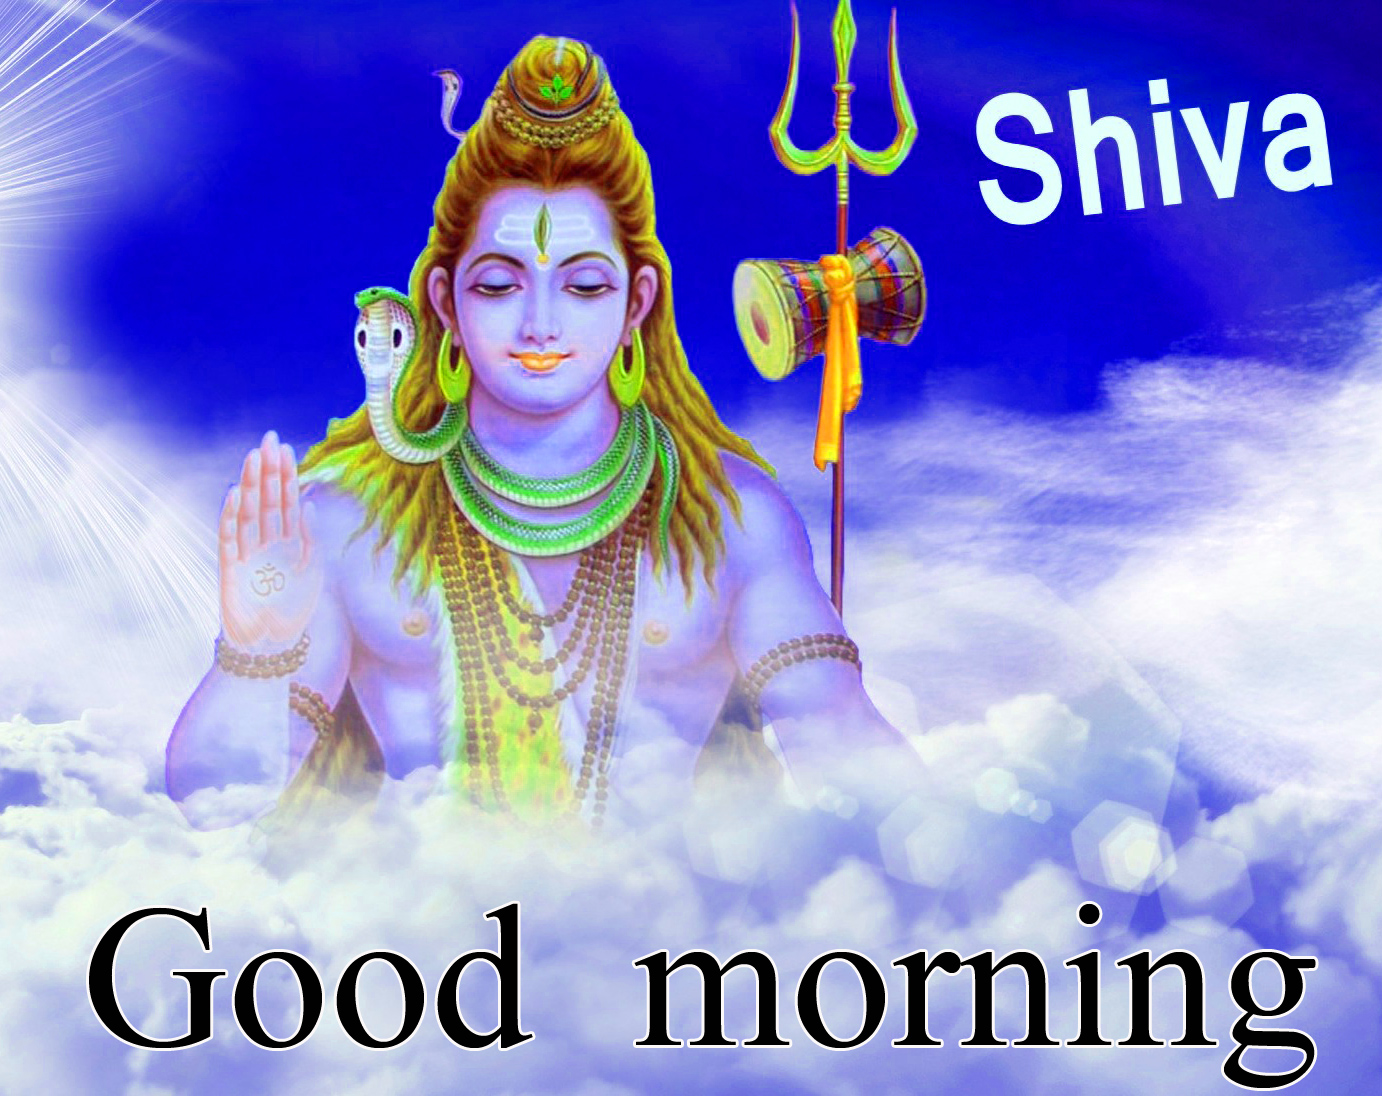 LORD SHIVA GOOD MORNING WISHES IMAGES WALLPAPER PICS HD DOWNLOAD & SHARE